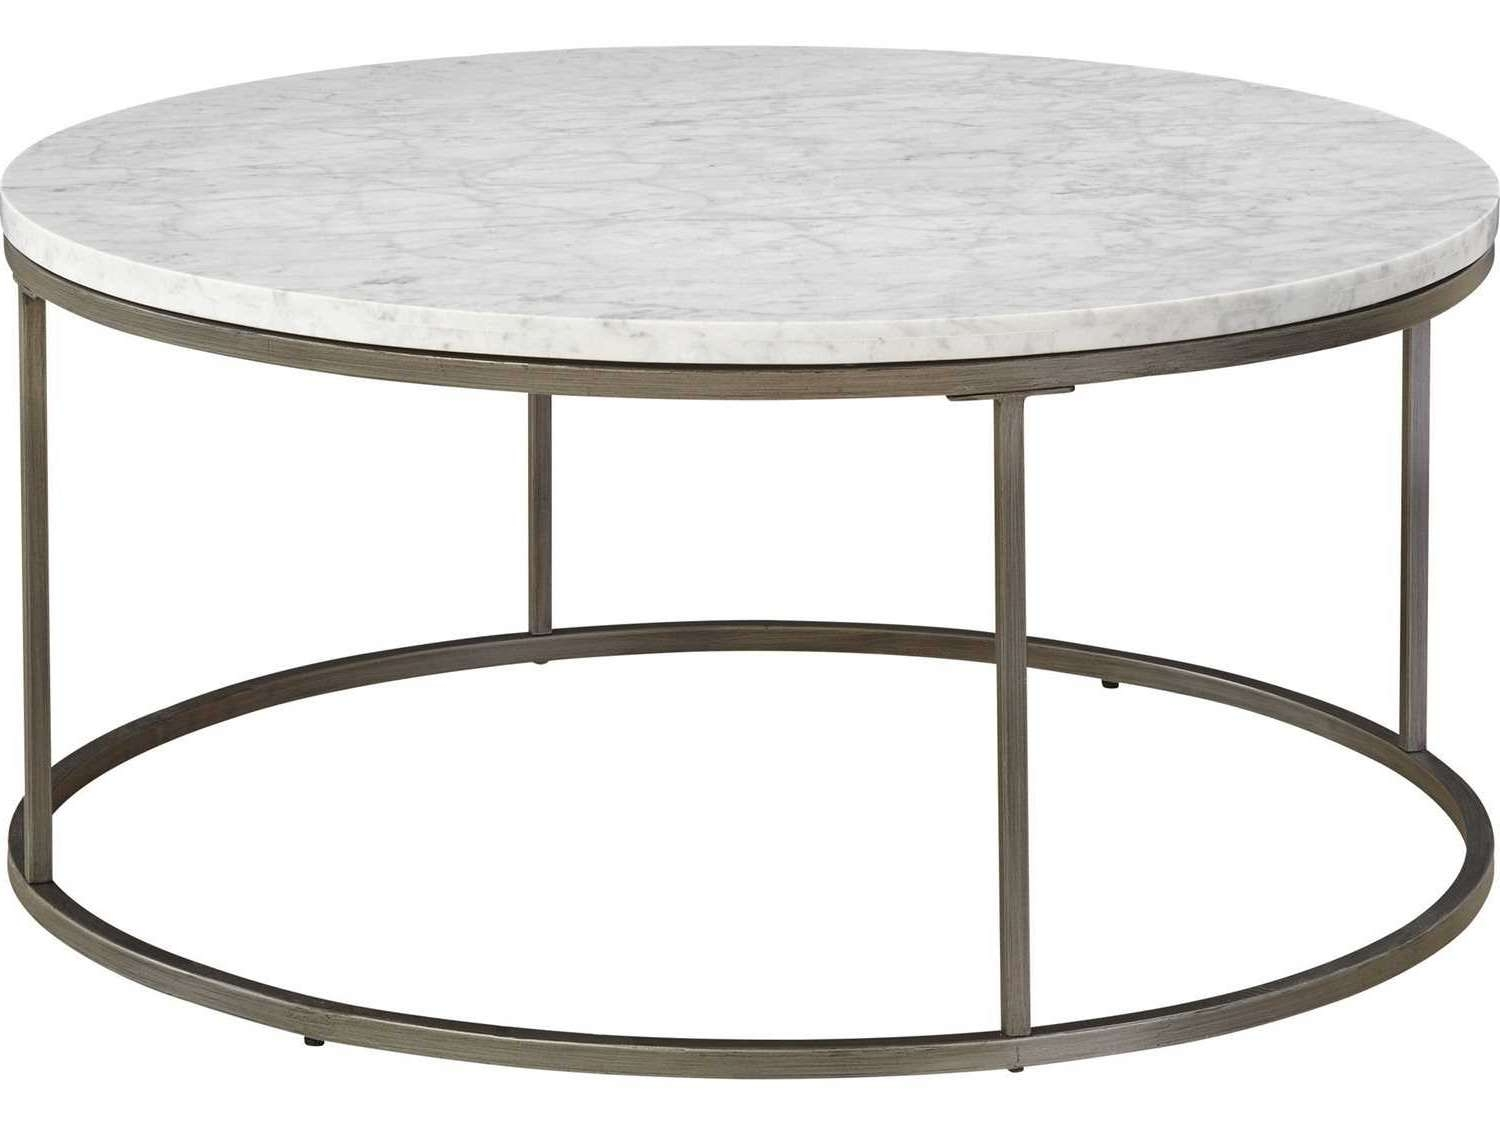 Casana Alana White Marble & Natural Steel 38'' Round Coffee Table In Widely Used Marble Round Coffee Tables (View 4 of 20)